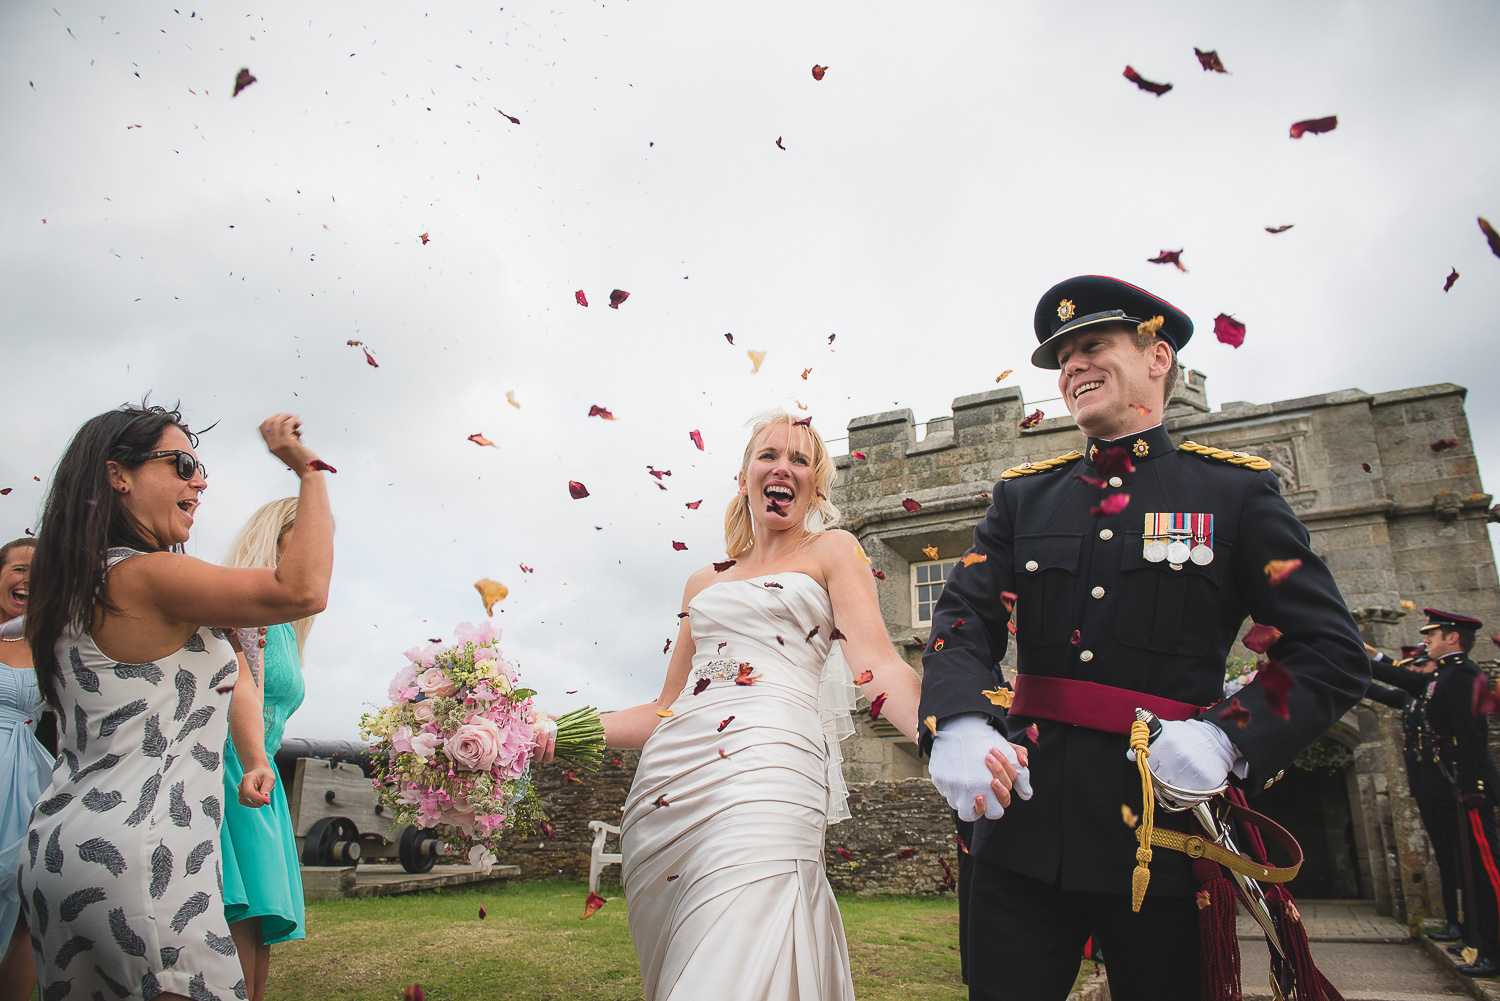 pendennis-castle-wedding-cornwall-photography-3.jpg